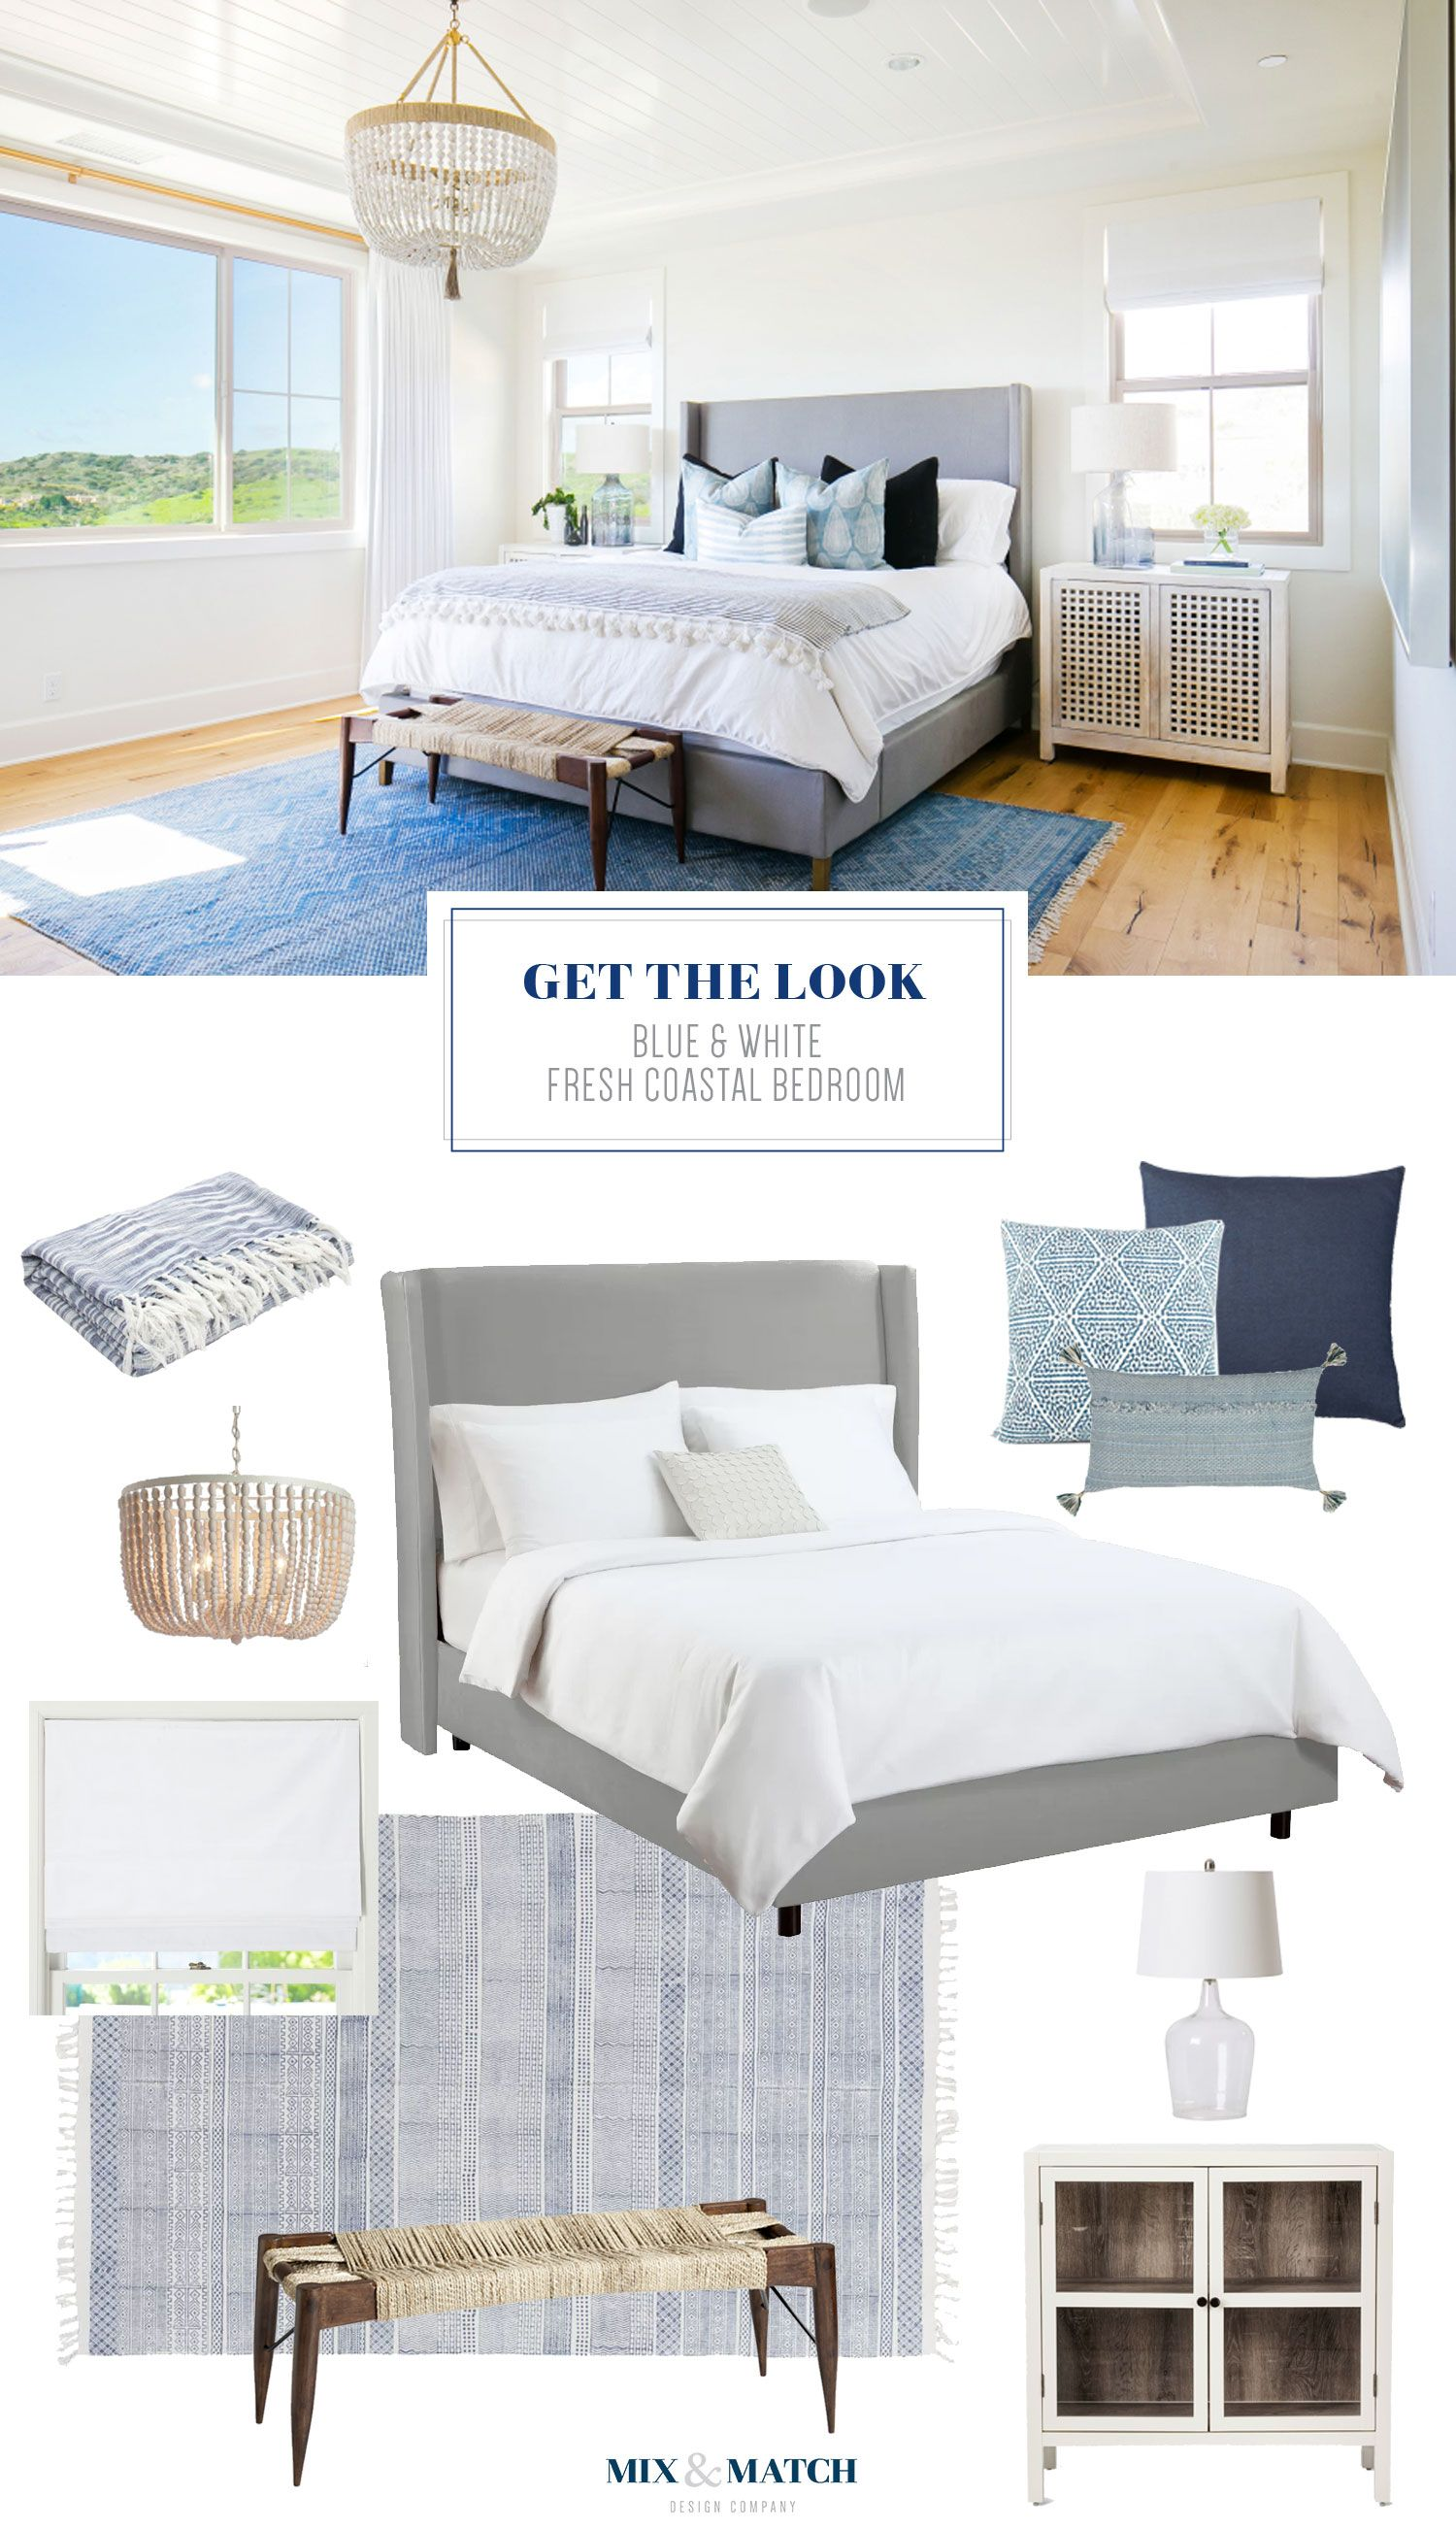 Get the Look: Blue & White Fresh Coastal Bedroom | Mix ...